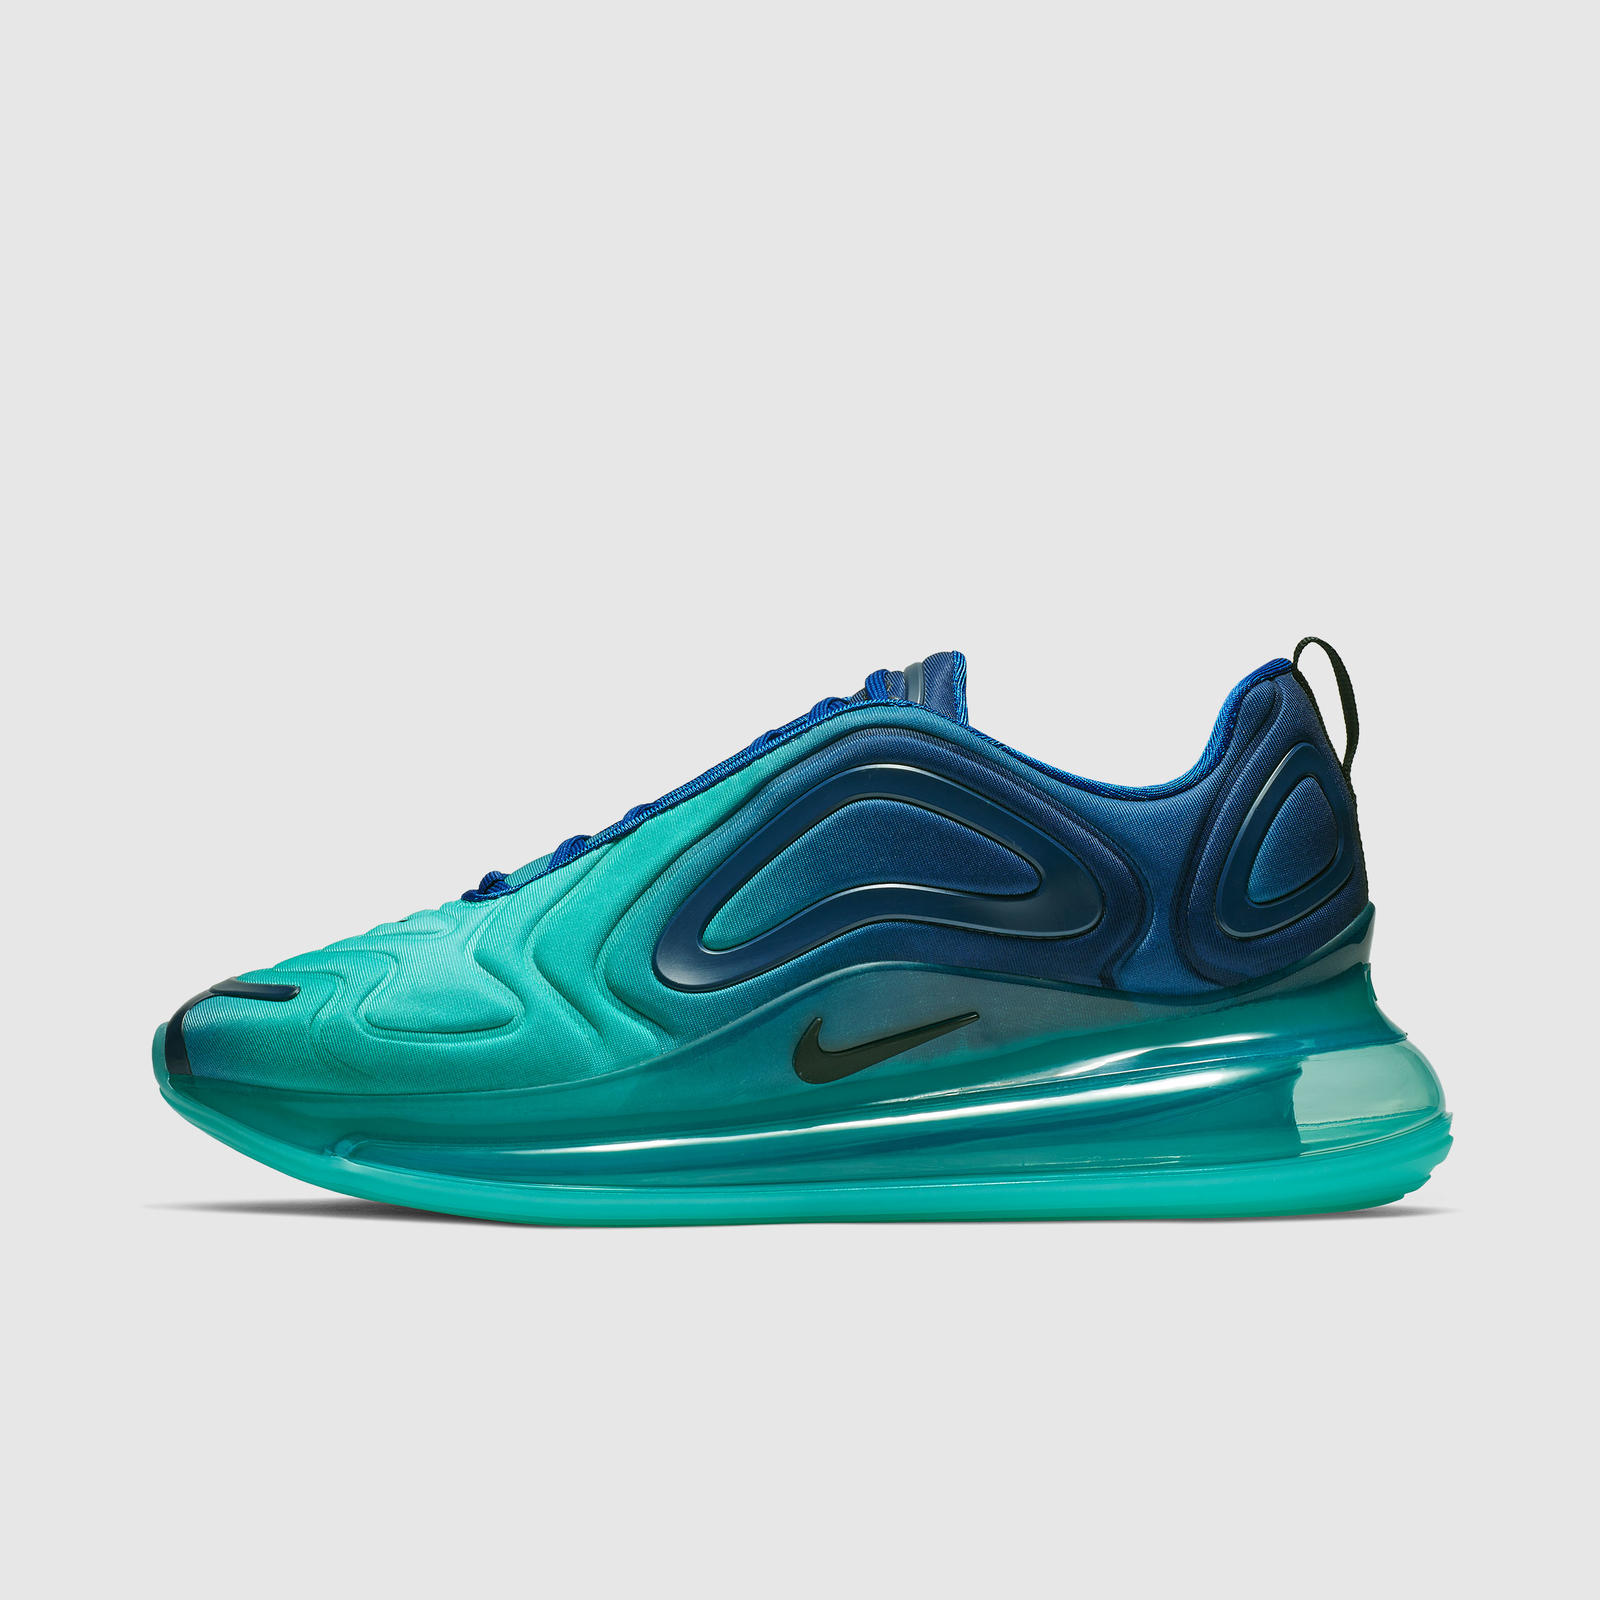 1cff9c4422b5 Nike Air Max 720 - Nike News